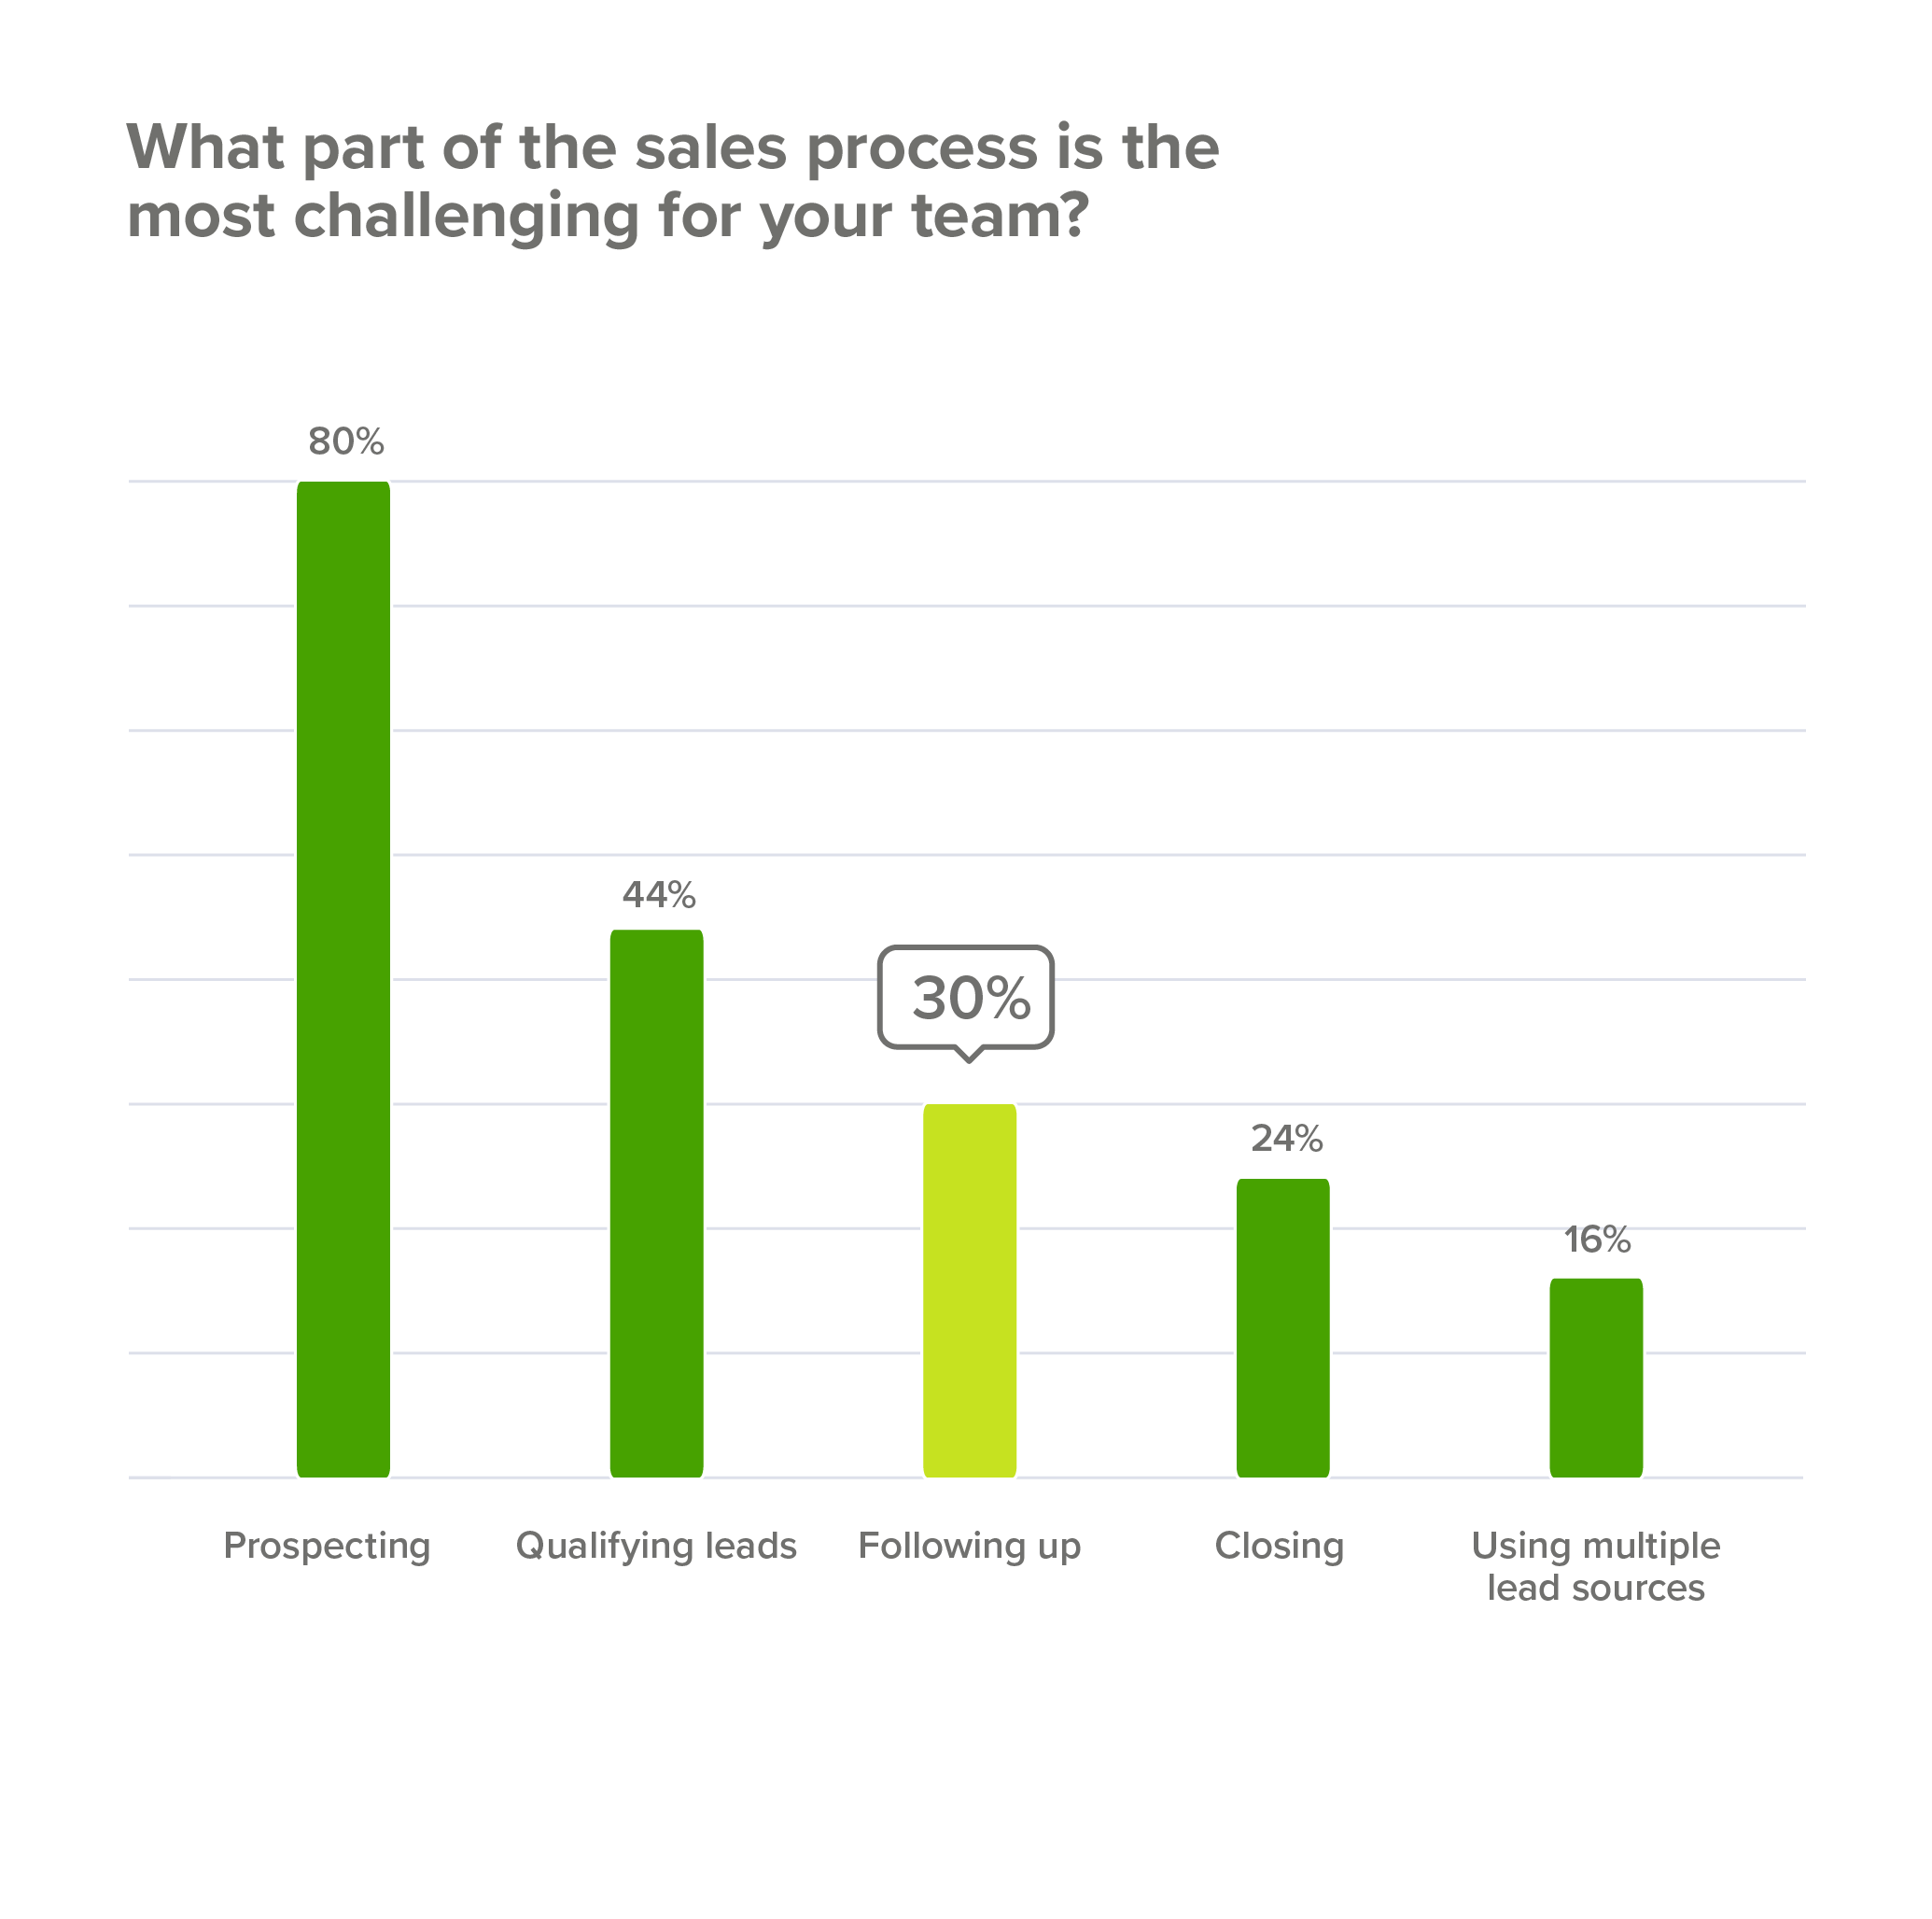 Top sales challenges